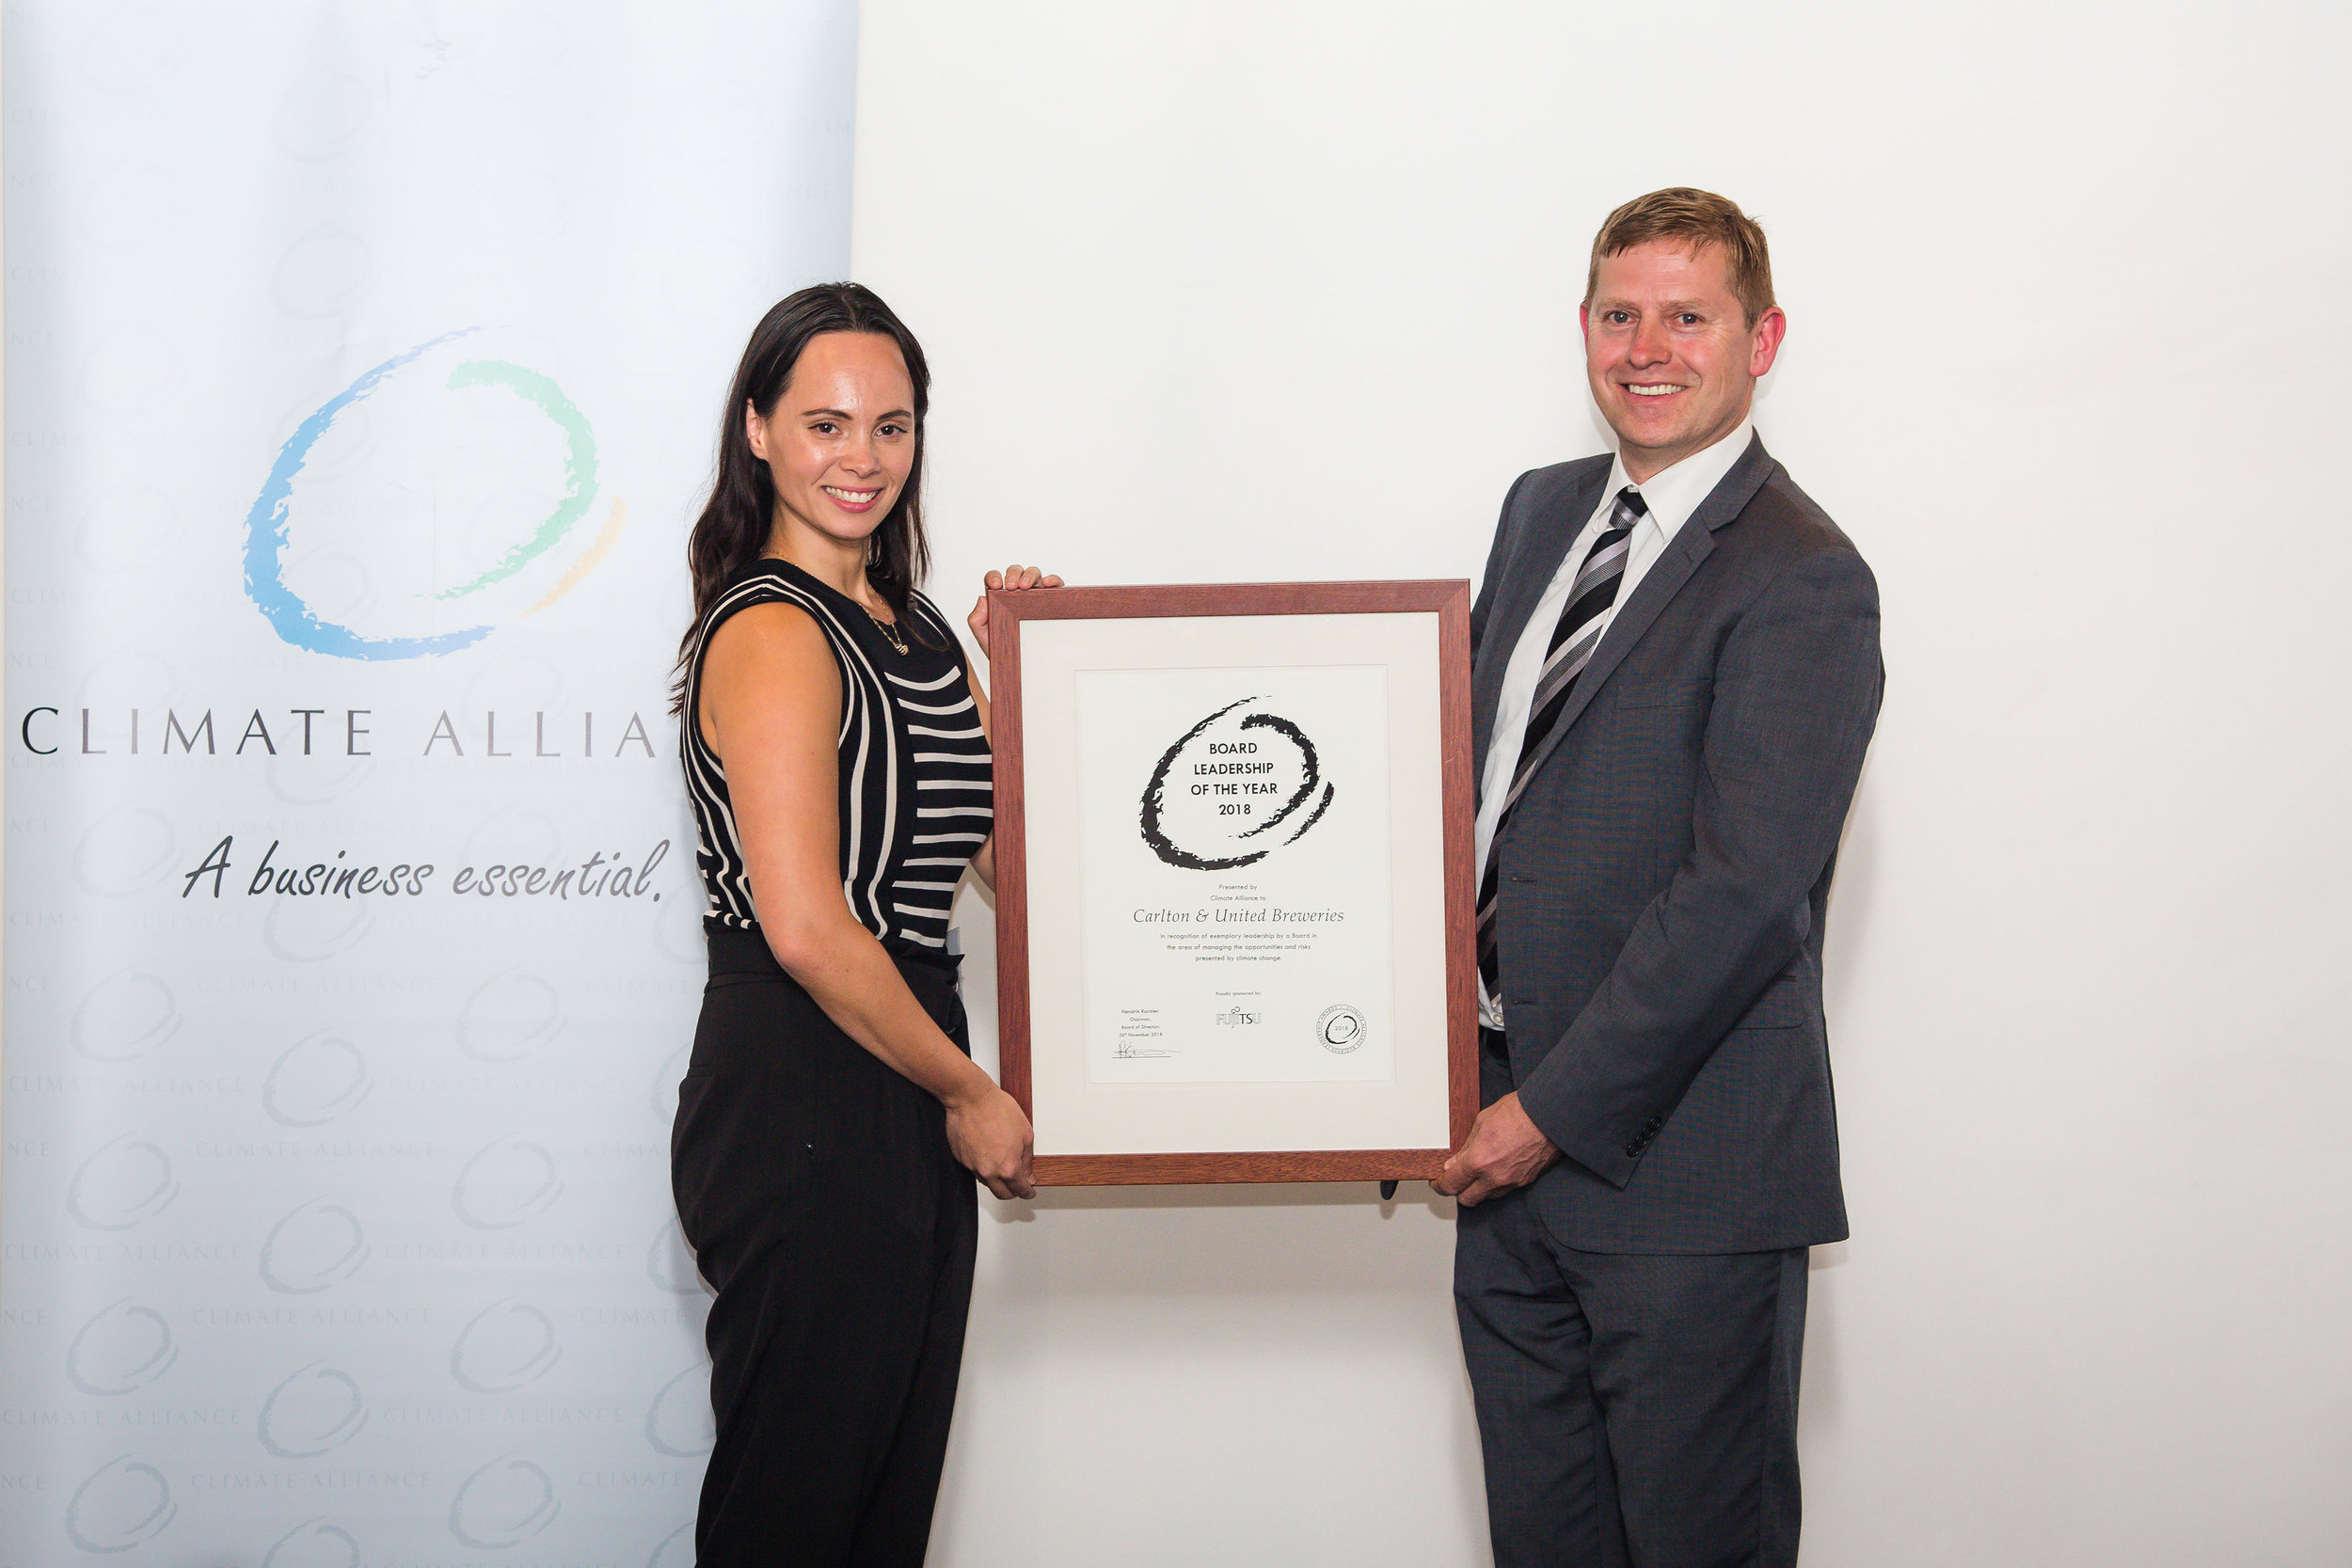 Board Leadership of the Year 2018 - Carlton & United Breweries, represented by Kirsten Sturzaker, Sustainability Manager at CUB with Turlough Guerin, Chairman of the Climate Alliance Board of Advisors.